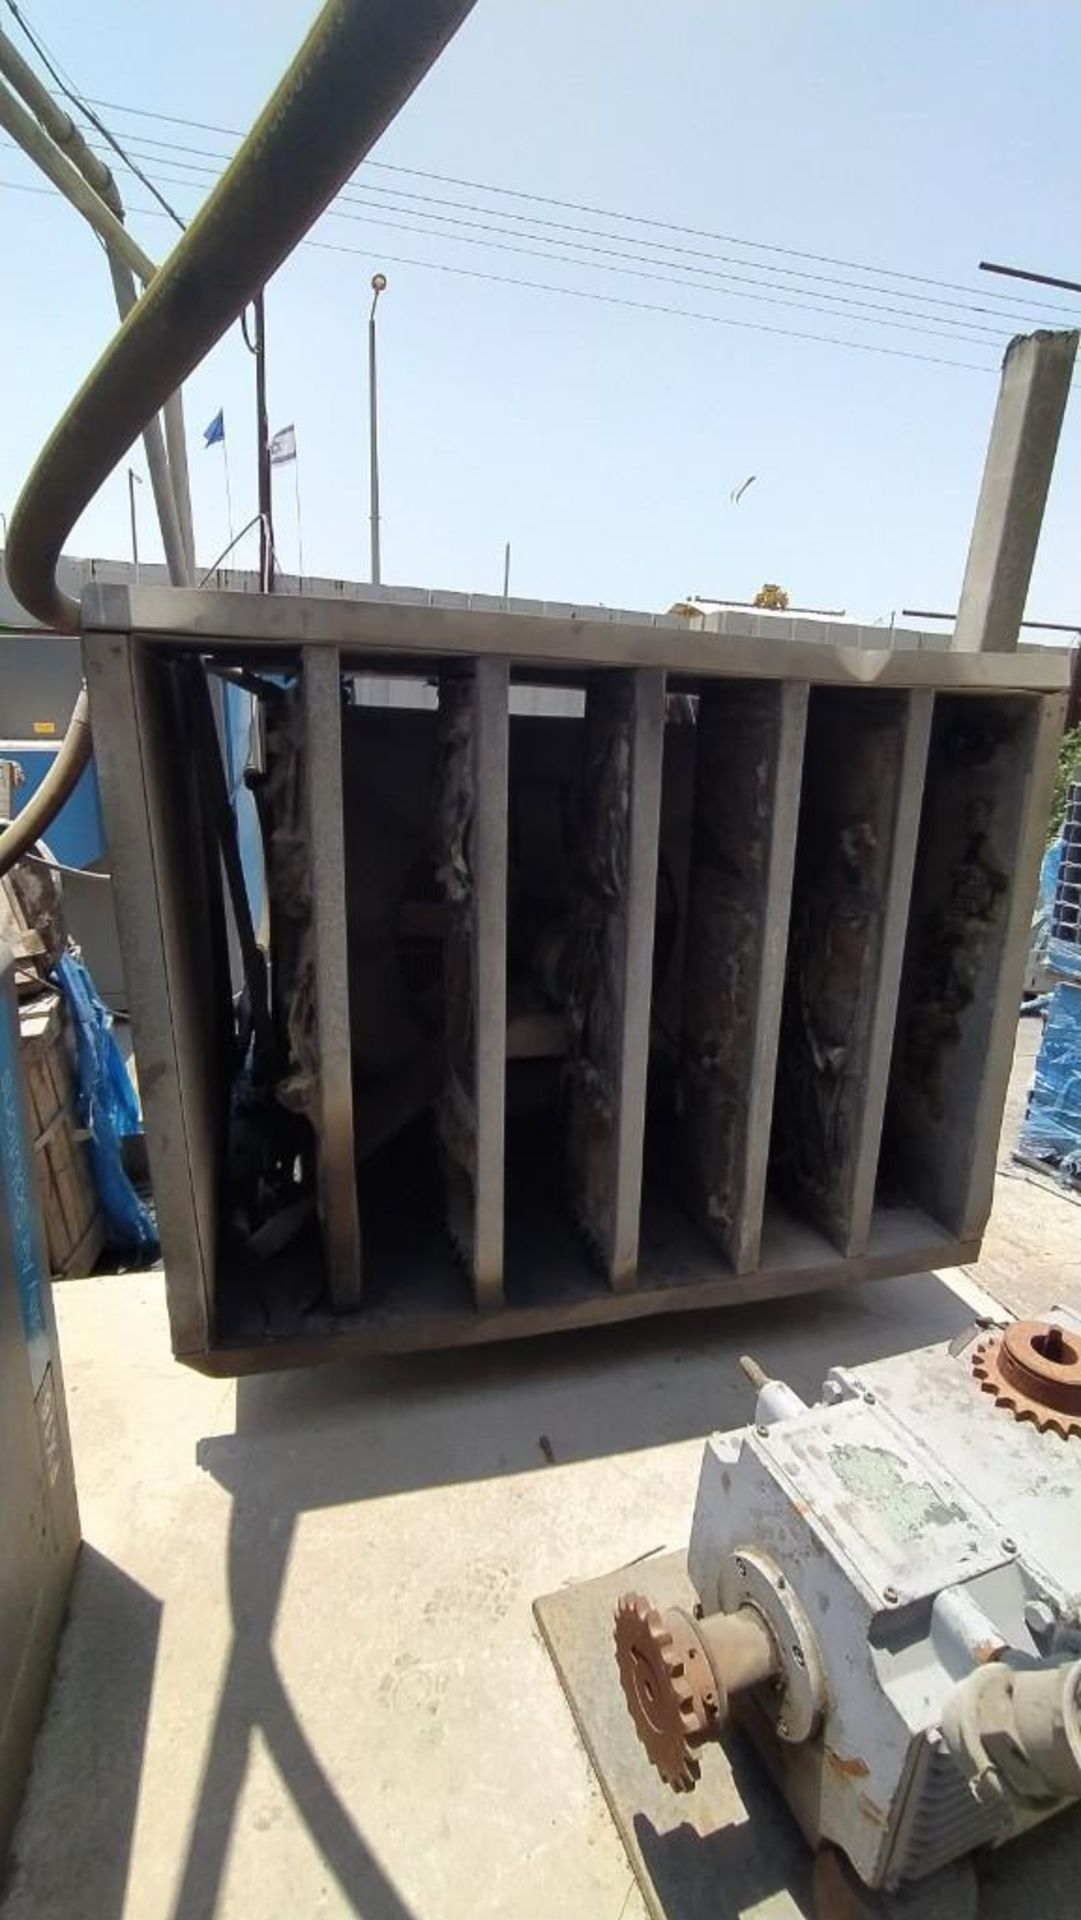 Lot 56 - ATLAS COPCO NON-CYCLING REFRIGERATED AIR DRYER; MODEL FX16